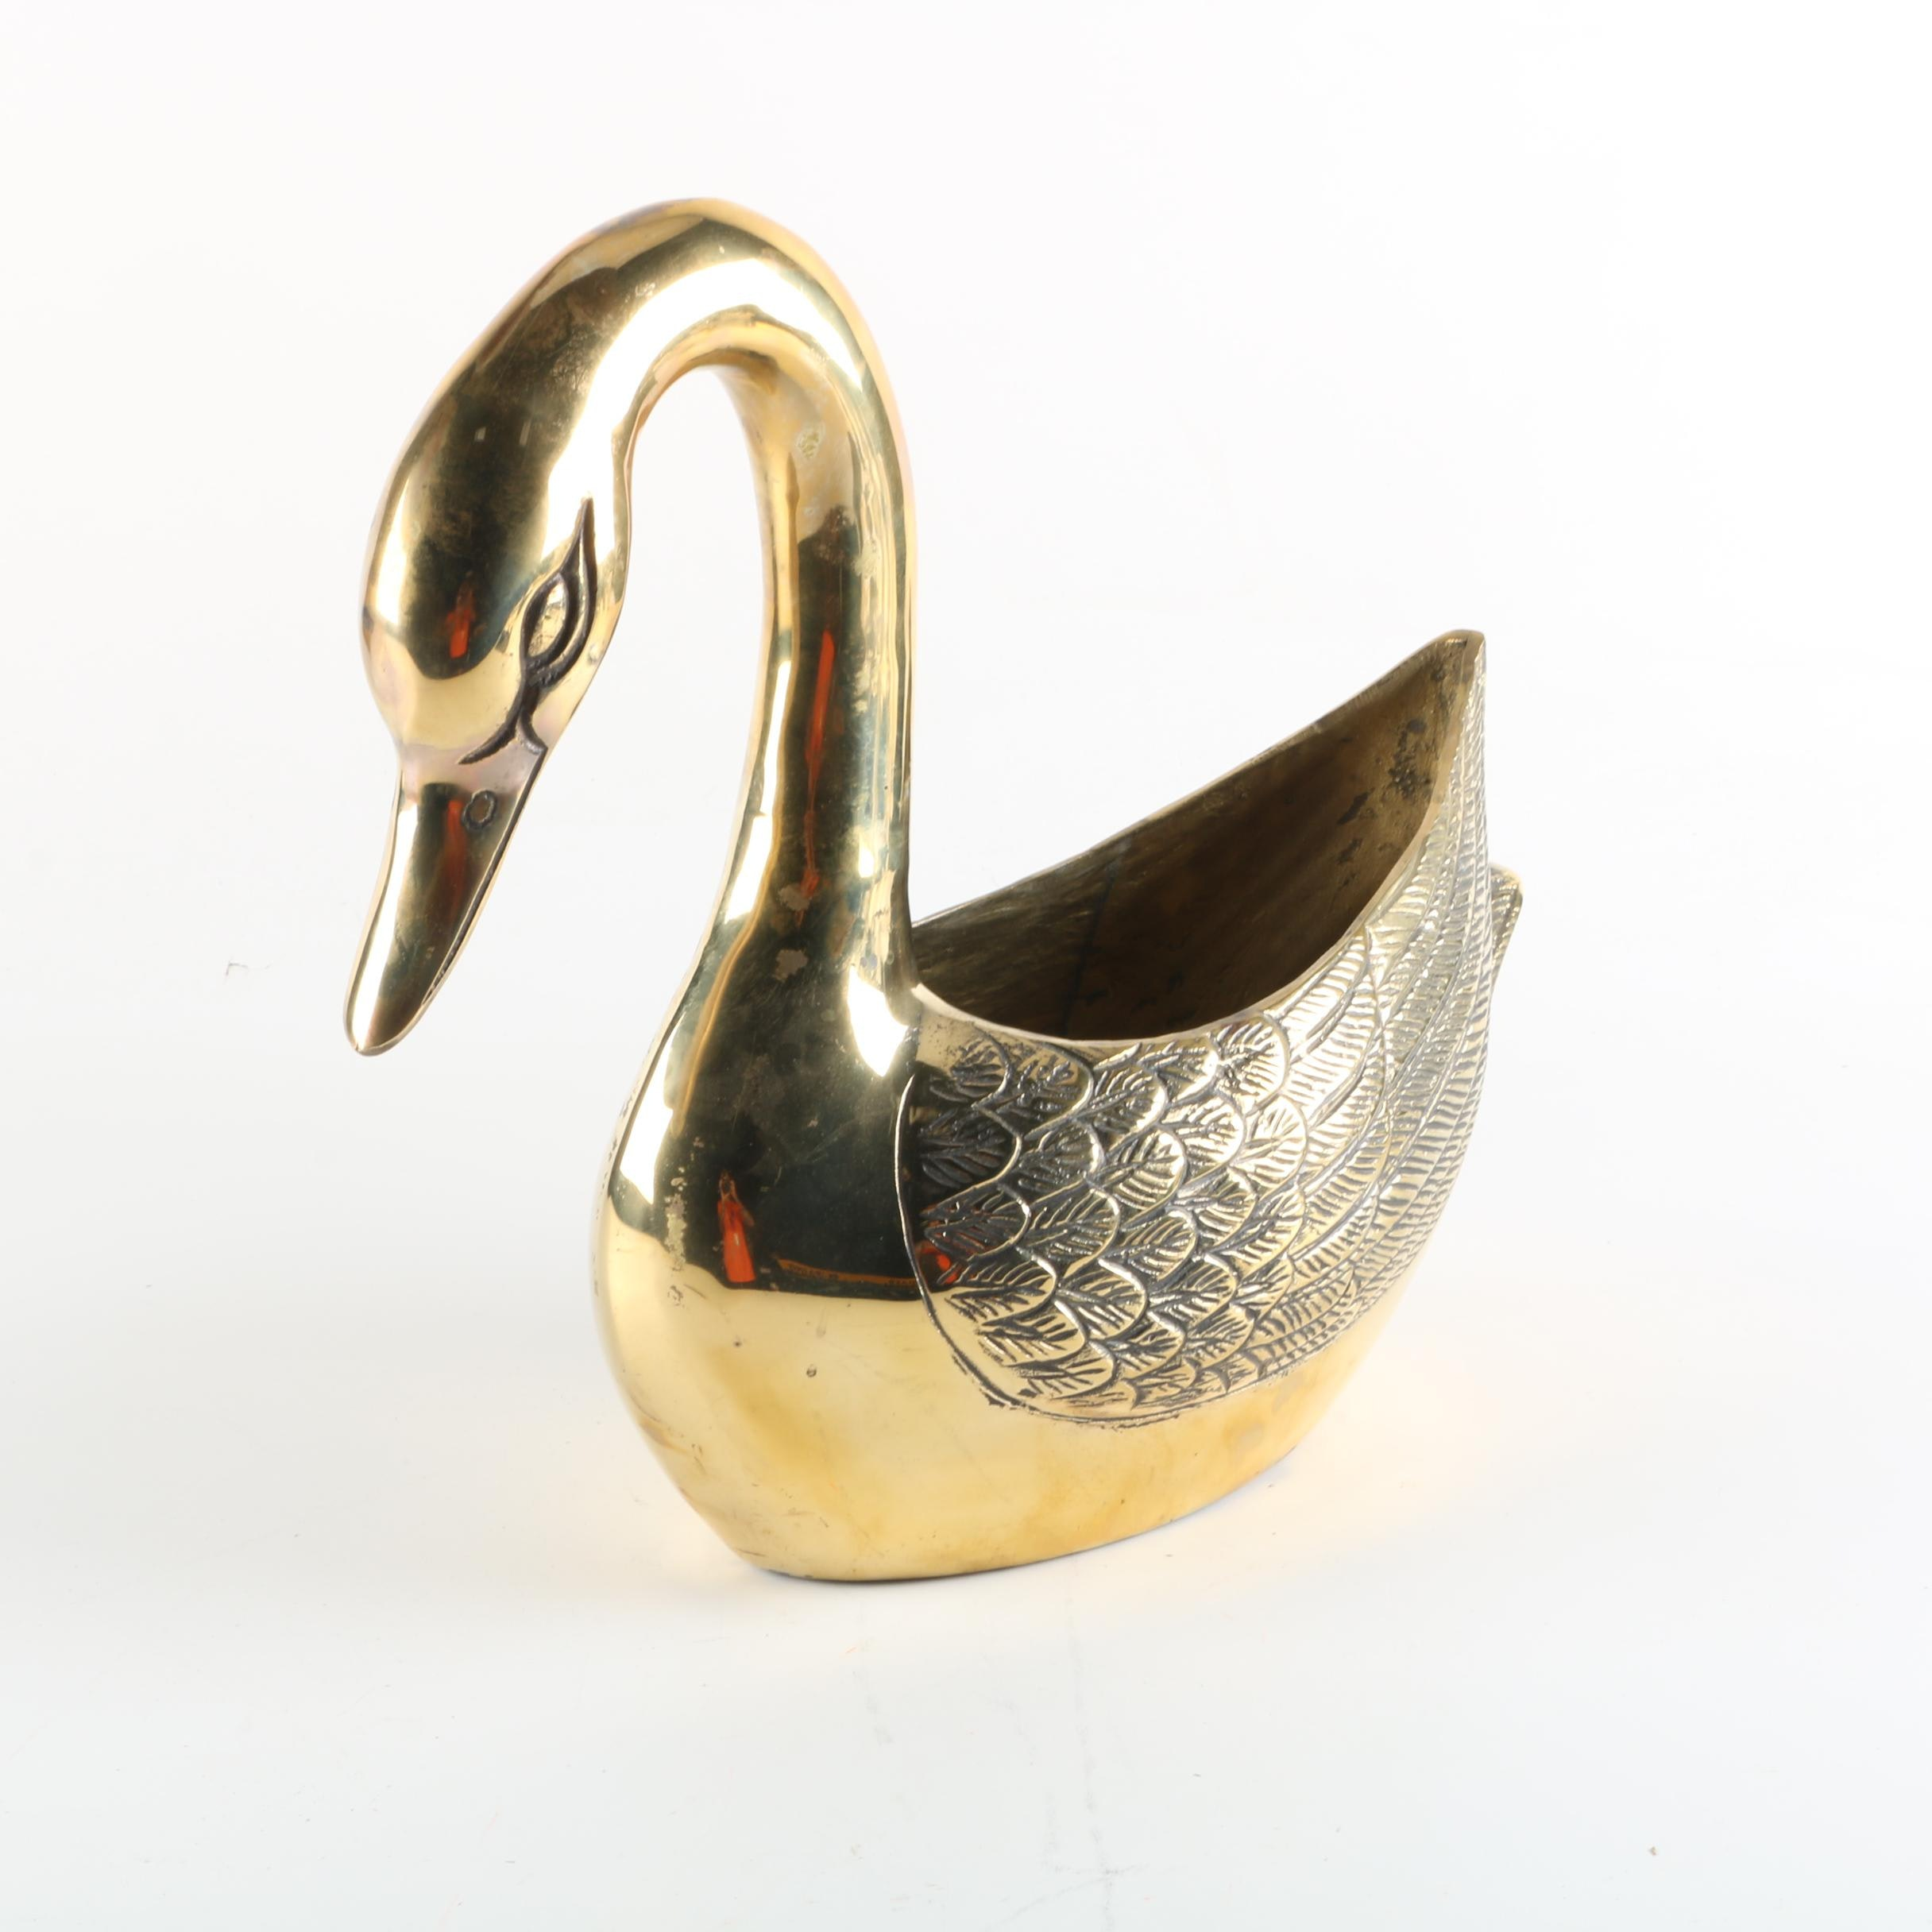 Brass Finished Metal Figurative Swan Planter